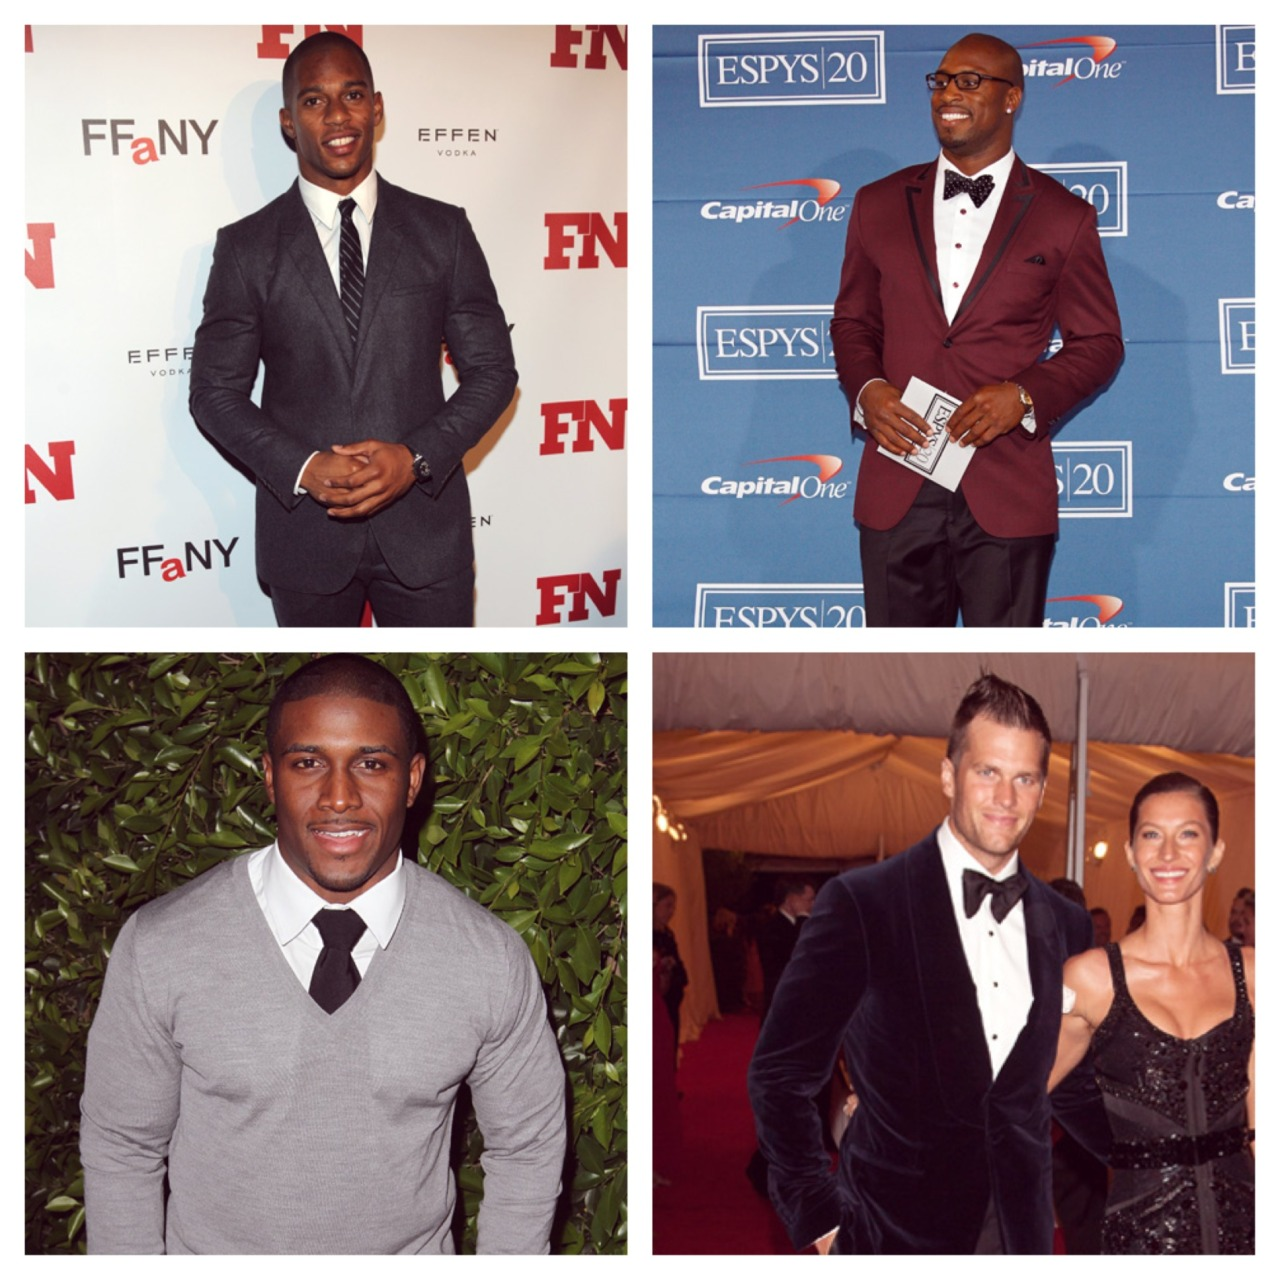 The NFL's Best Dressed  We compiled a list of the NFL's best dressed players in honor of tomorrow's Super Bowl.   See the entire list on our Facebook > http://mr-p.co/iyXXid